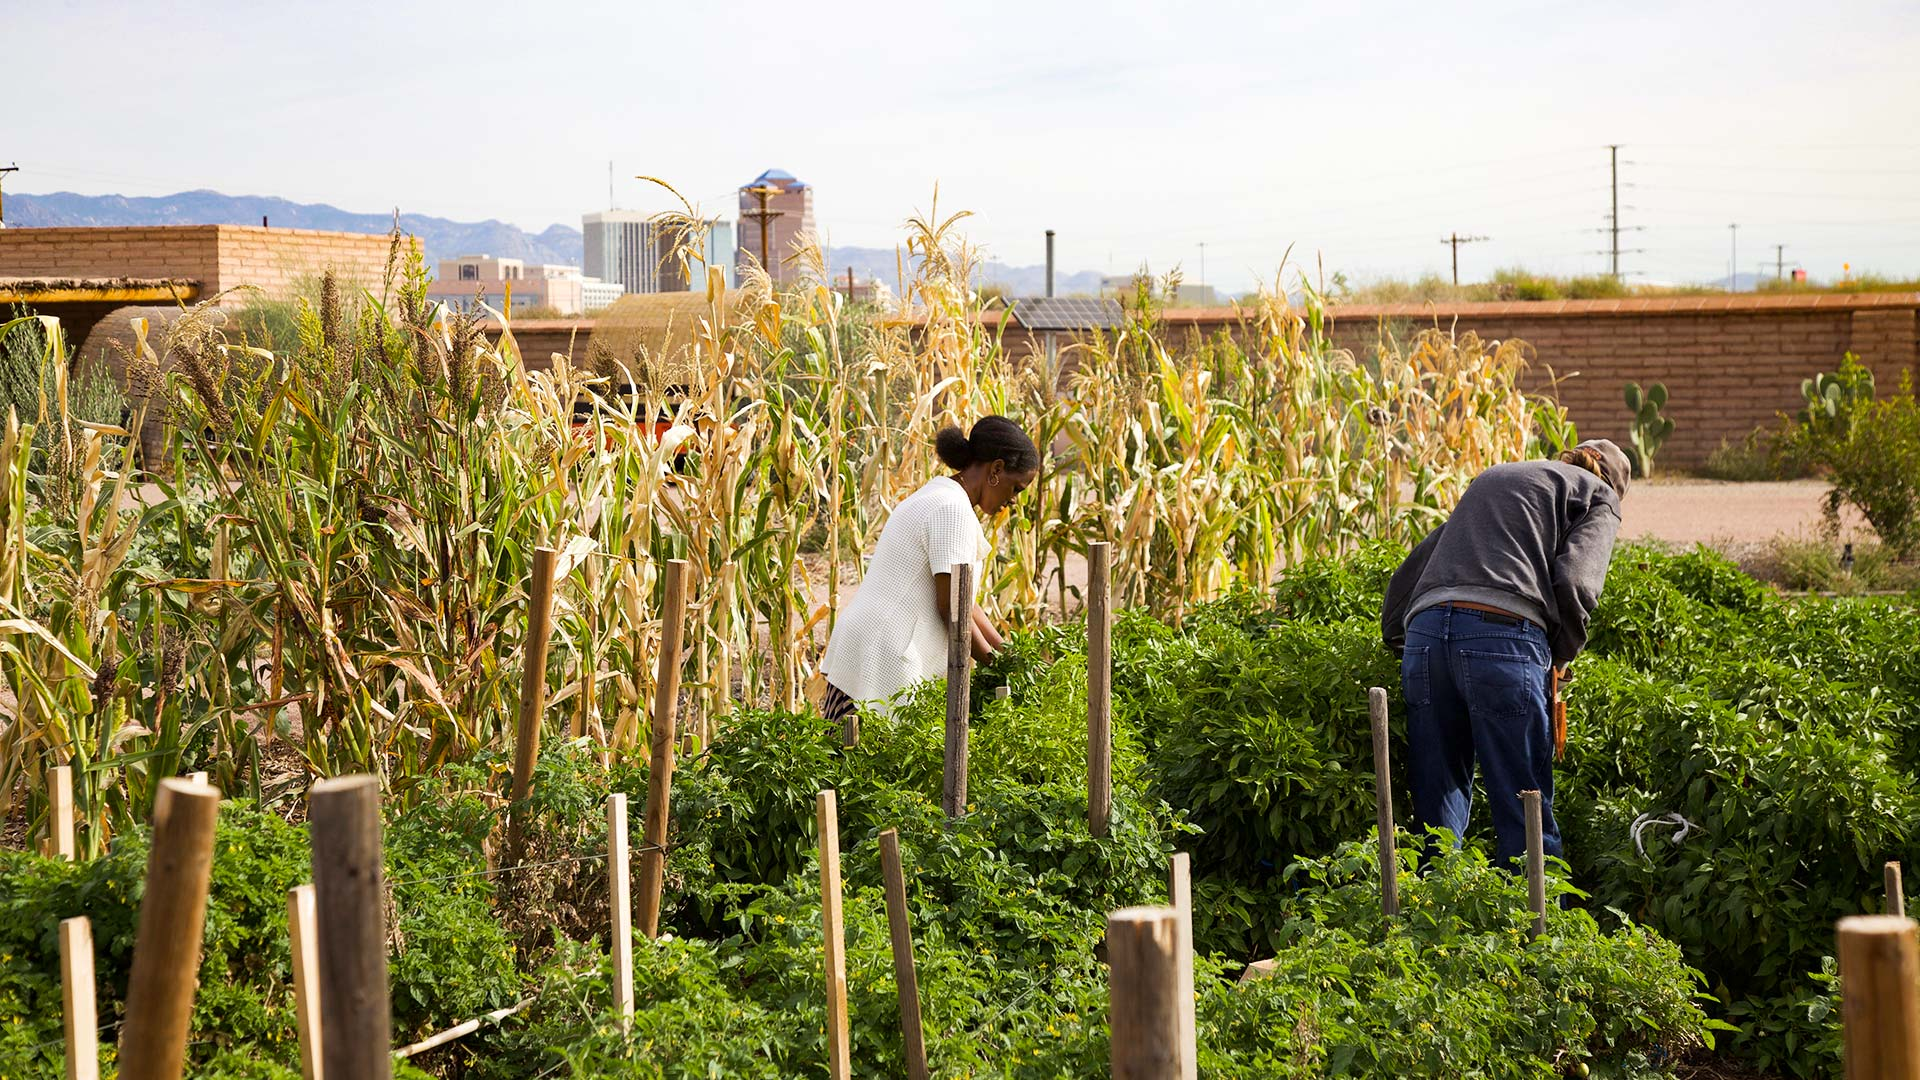 Volunteers work at the nonprofit-run Mission Garden with downtown Tucson's skyline in the background, November 2018.